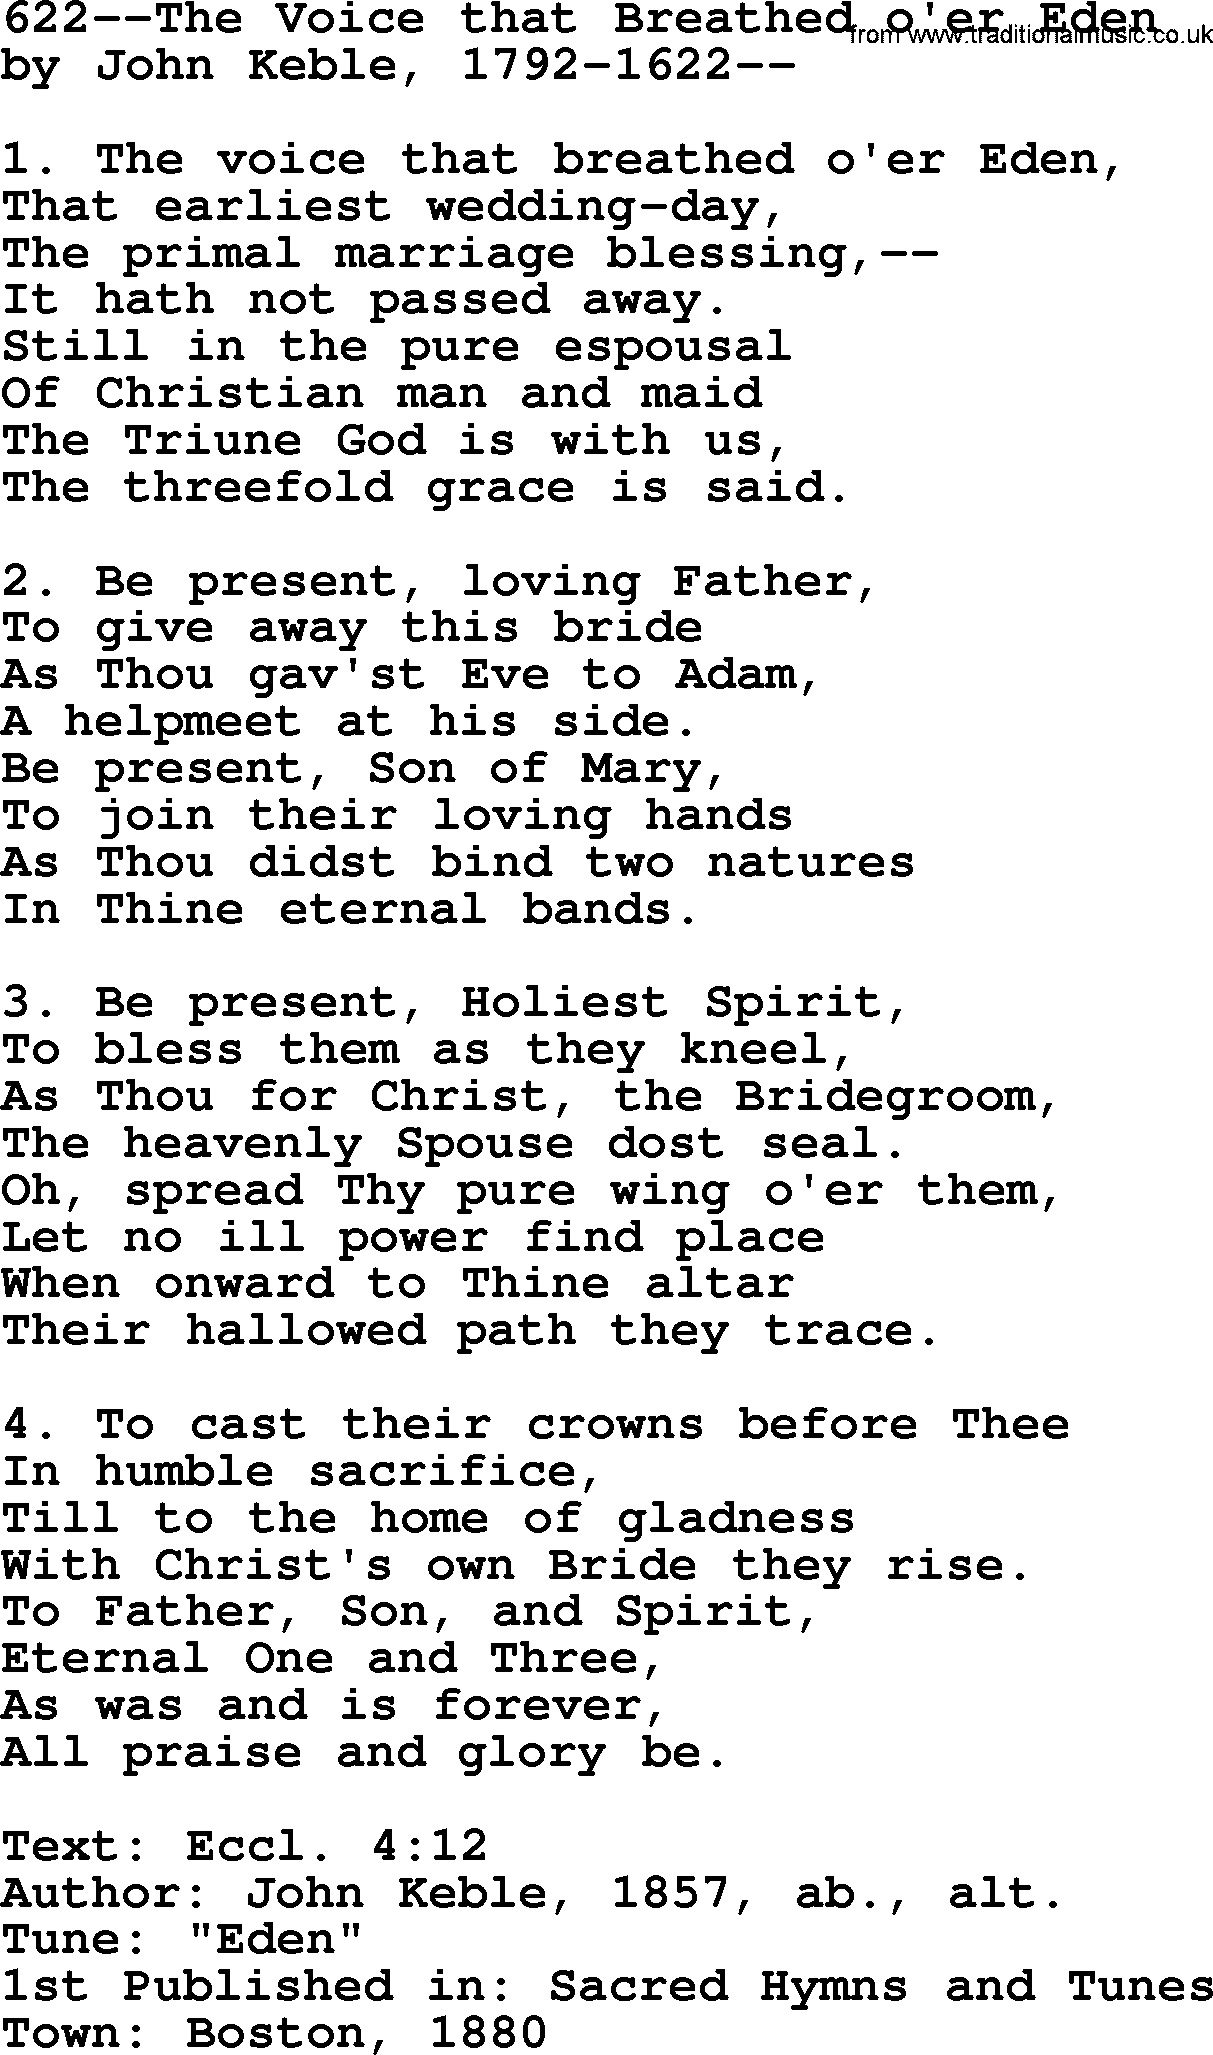 Lutheran Hymn: 622--The Voice that Breathed o'er Eden.txt